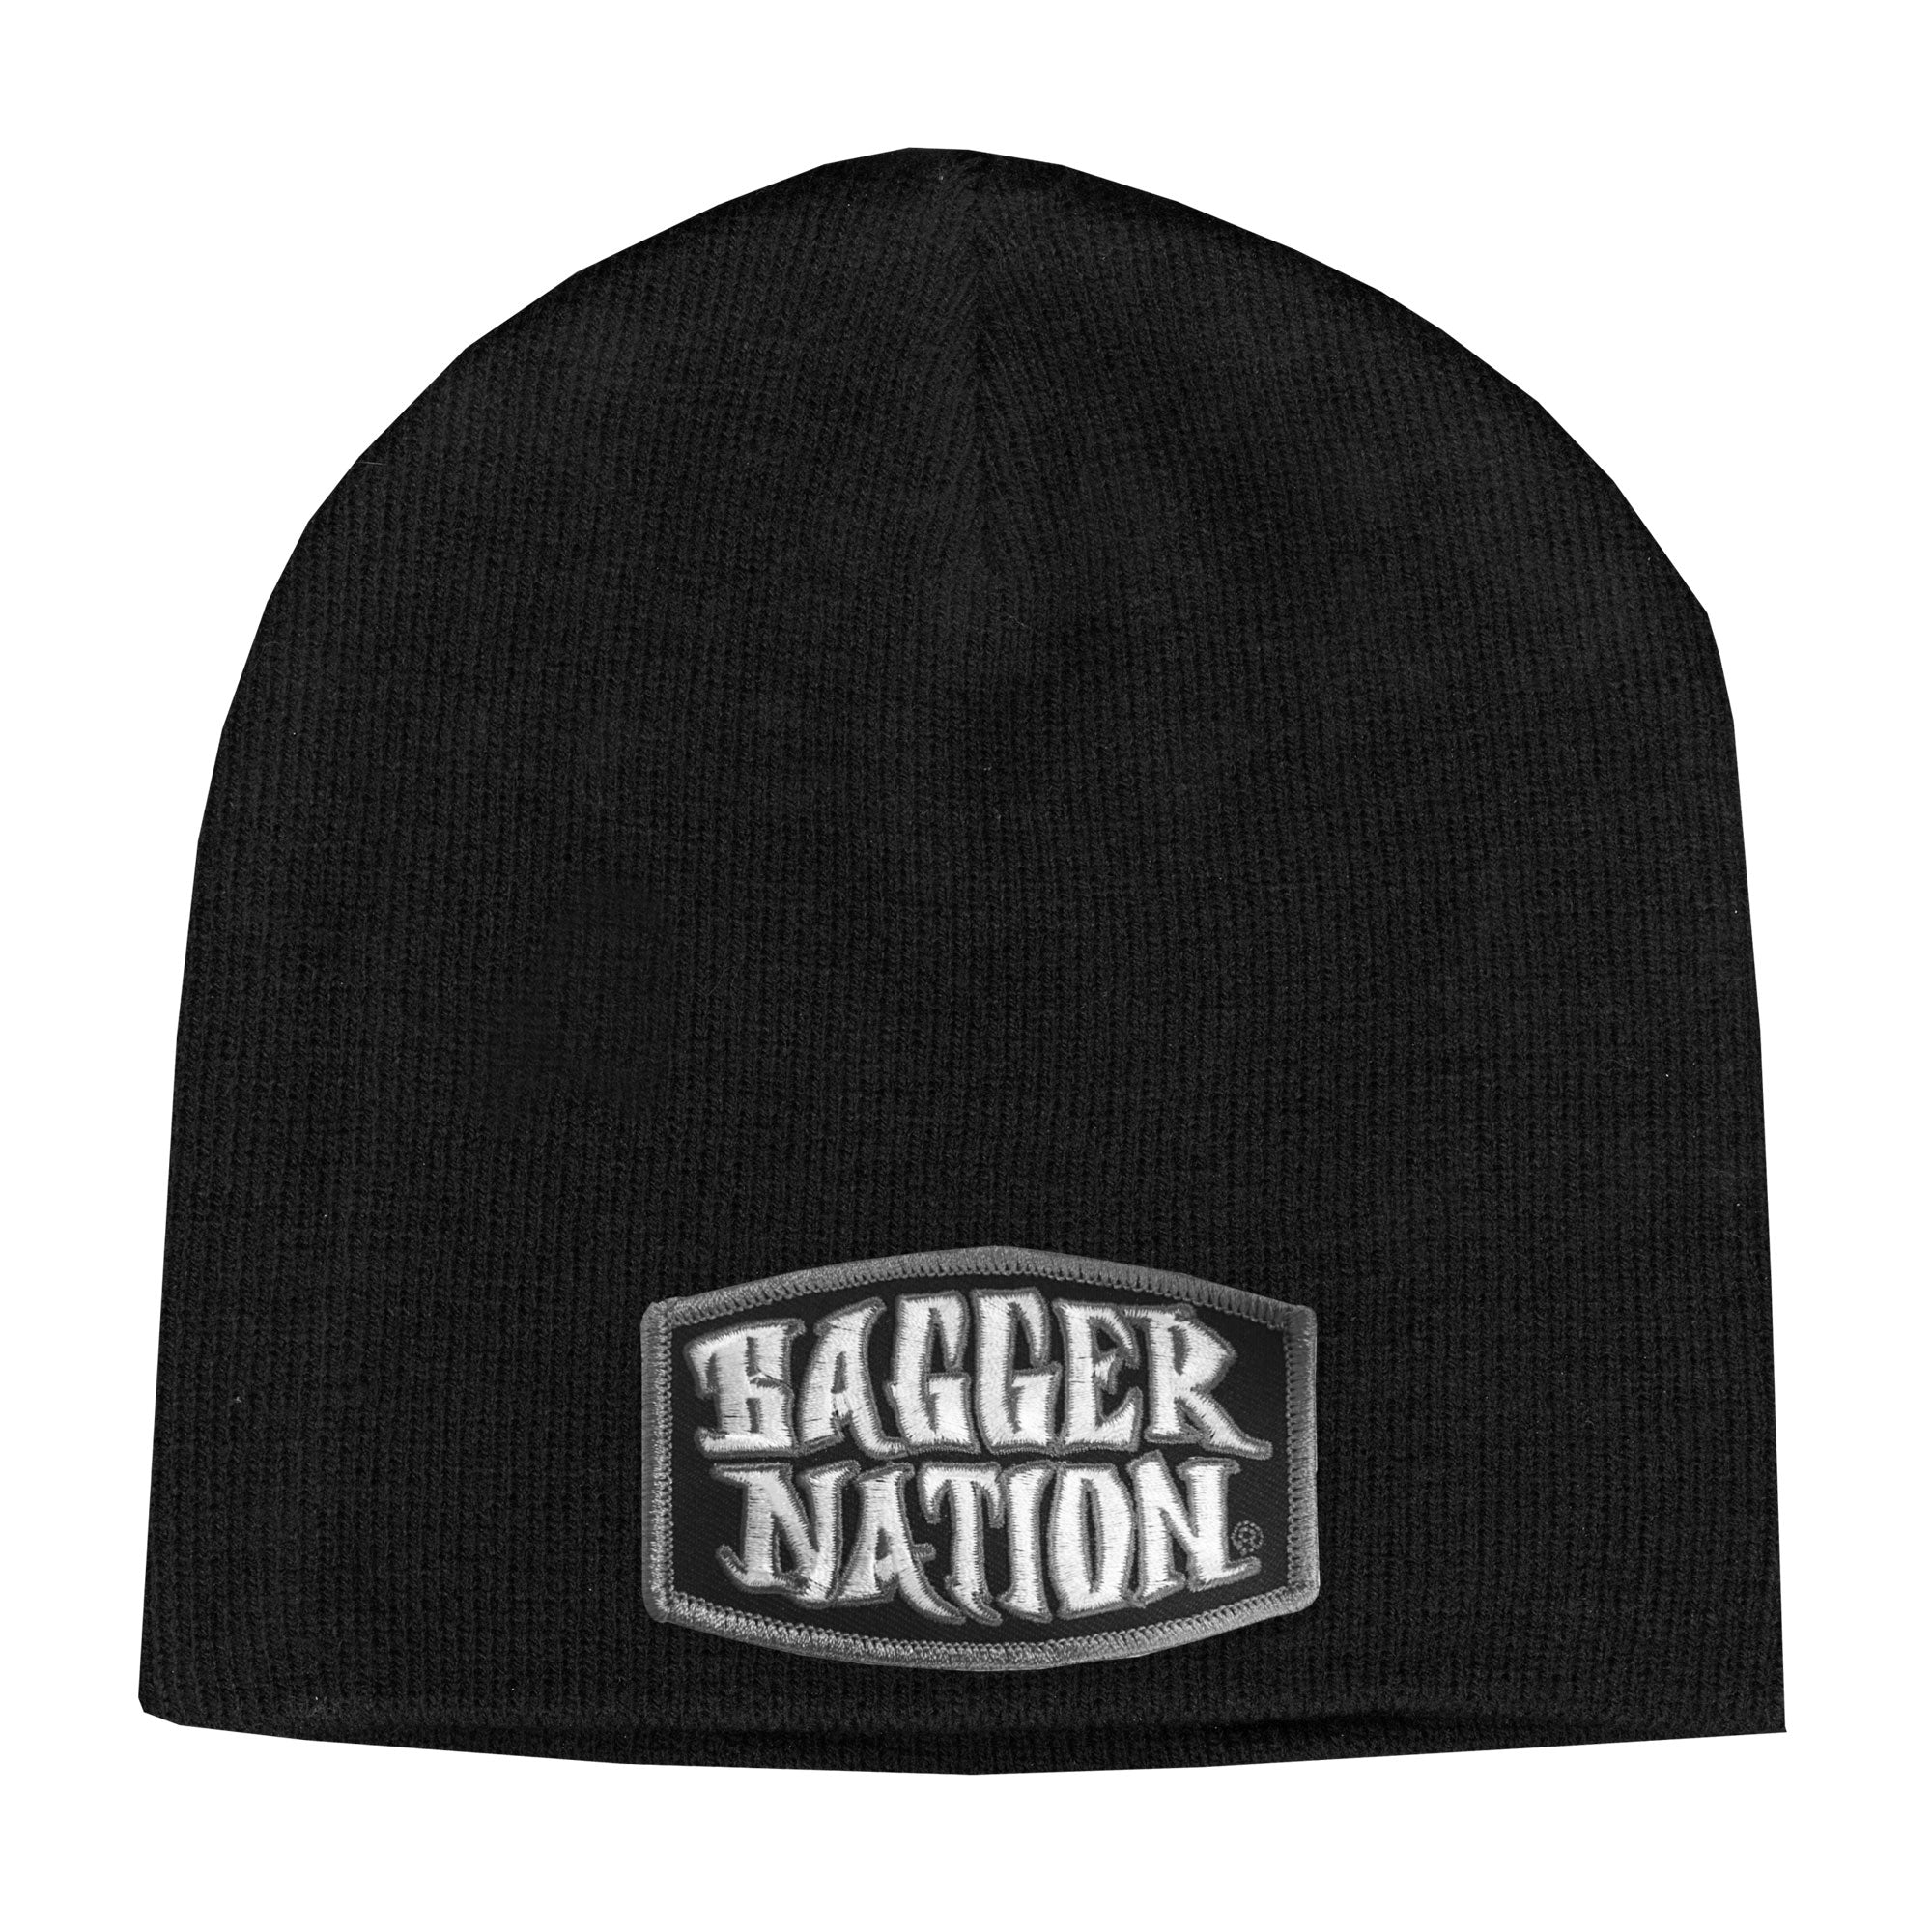 Official Paul Yaffe's Bagger Nation Knit Hat